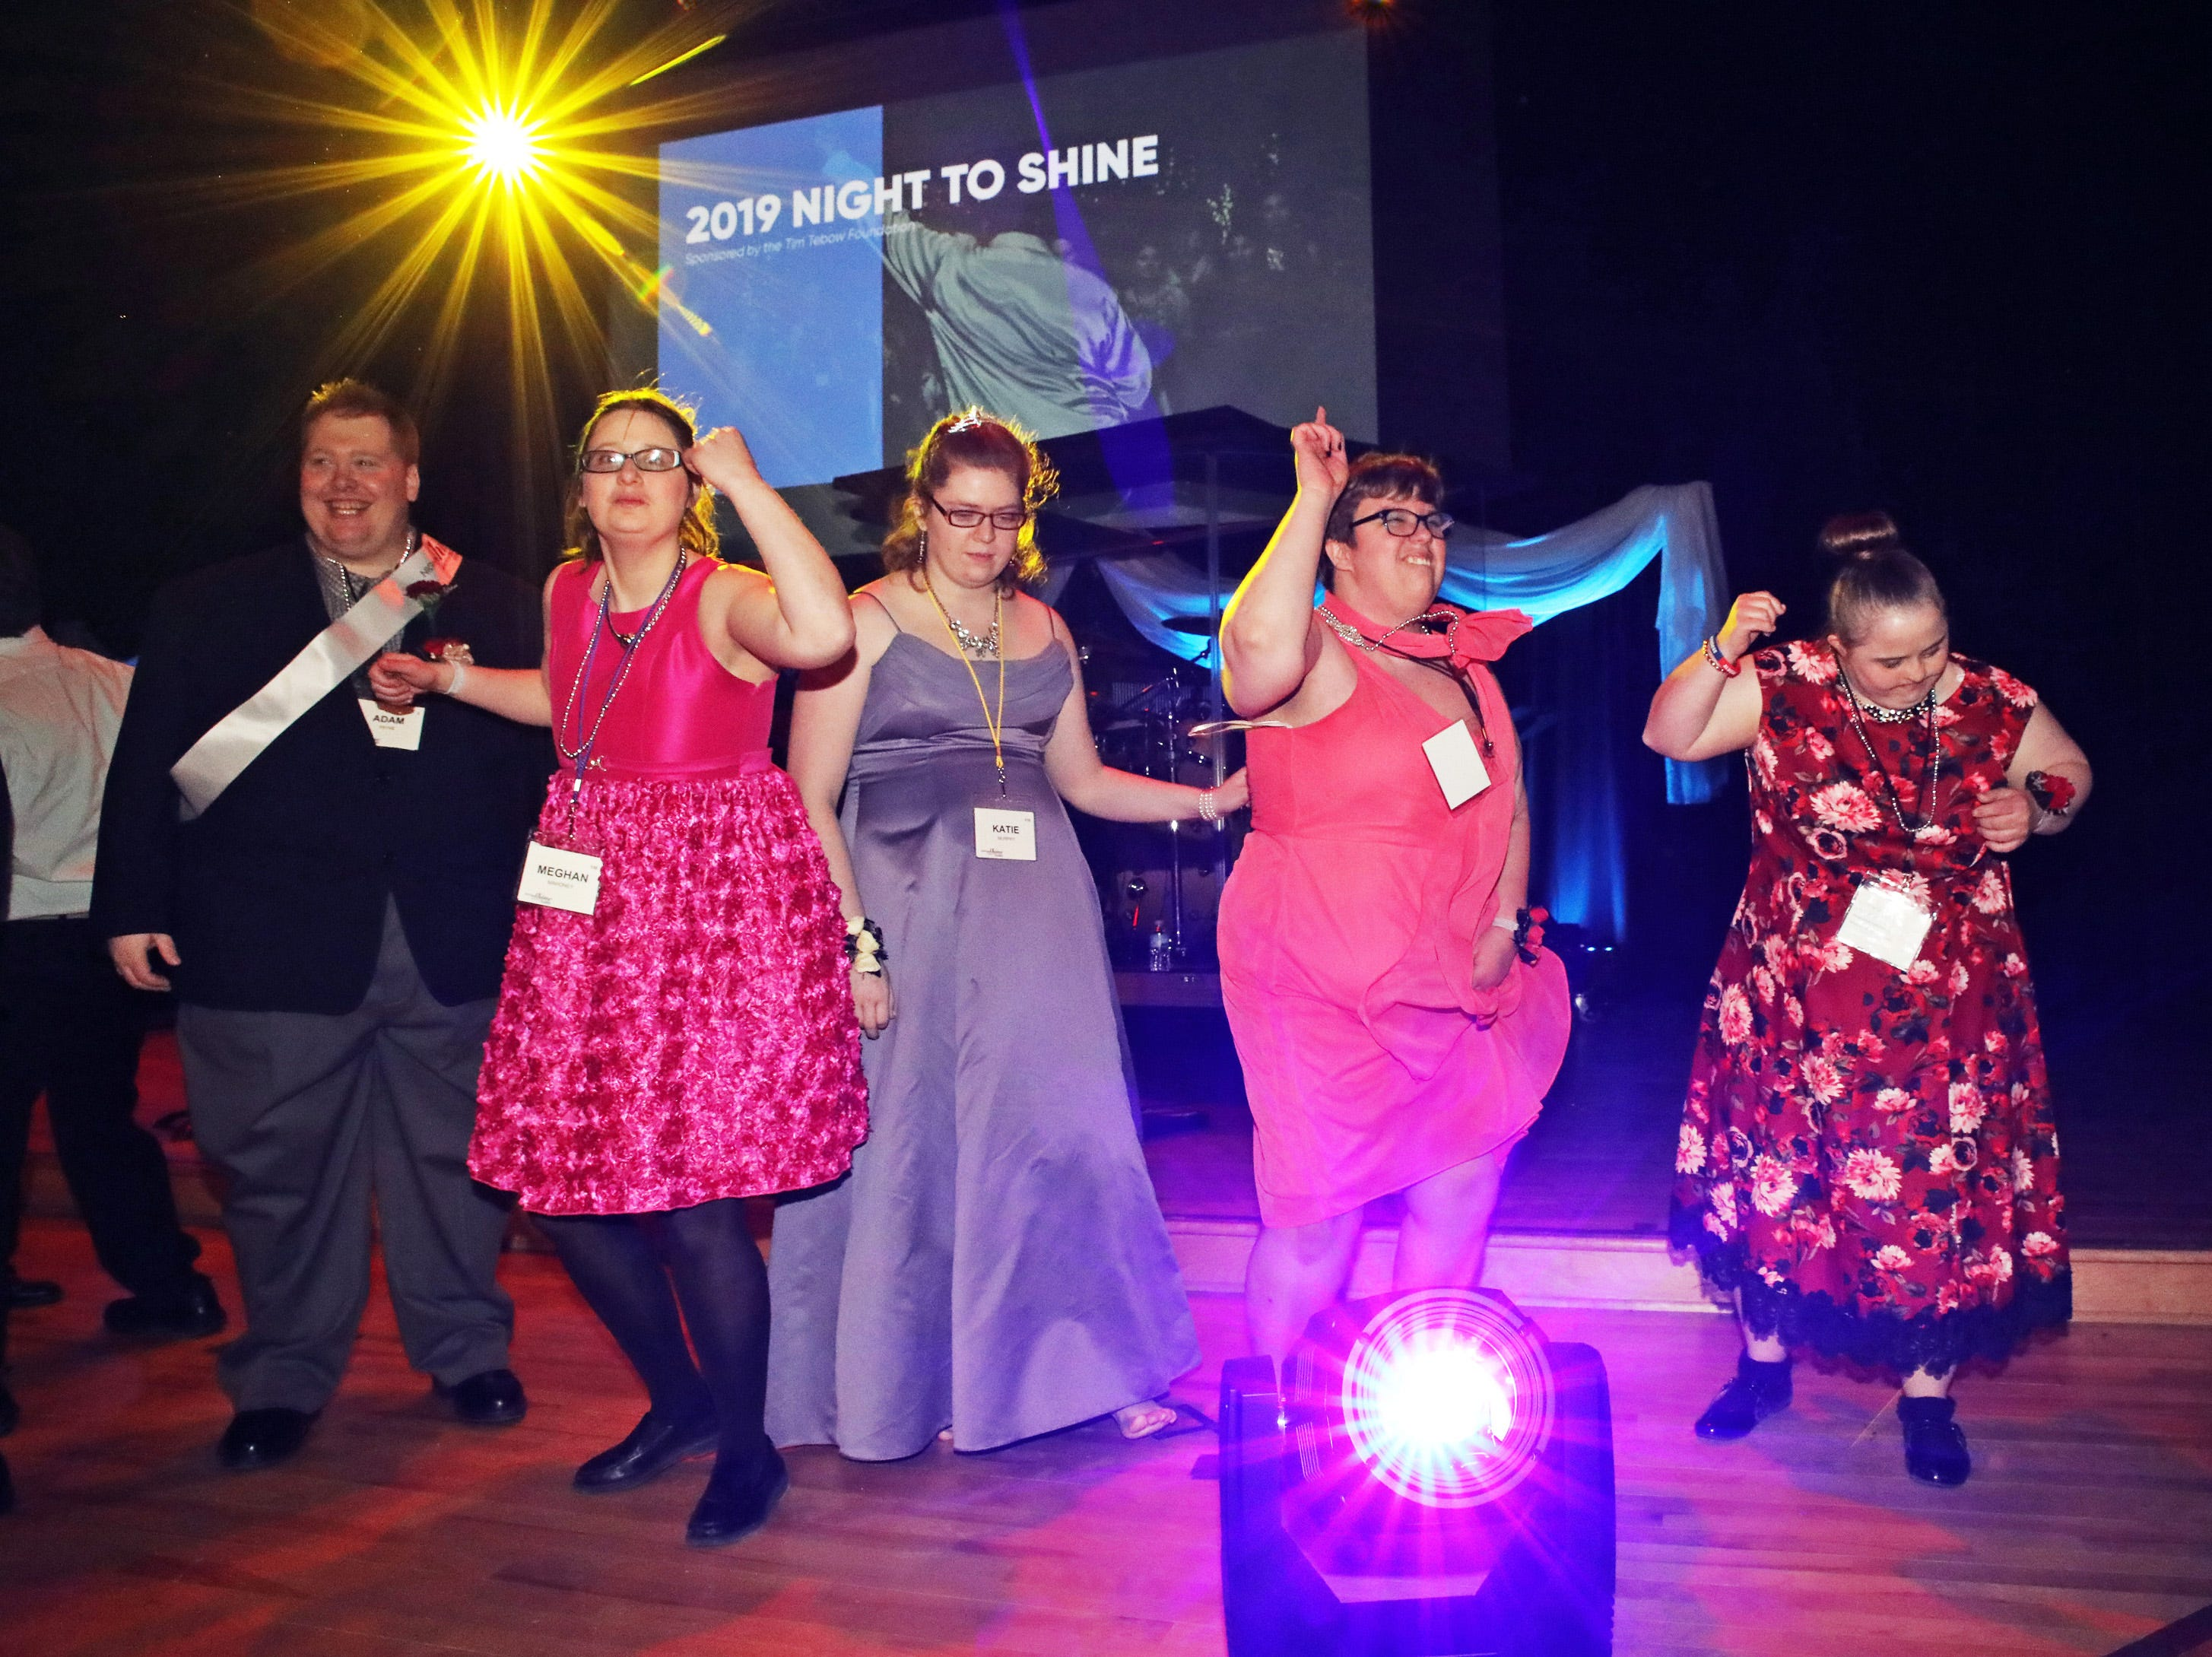 The dance party continues during the Night to Shine event at Prairie Ridge Church in Ankeny on Friday, Feb. 8, 2019. Sponsored by the Tim Tebow Foundation, the event for adults with special needs features a prom-like atmosphere with dancing, limo rides, food and more.